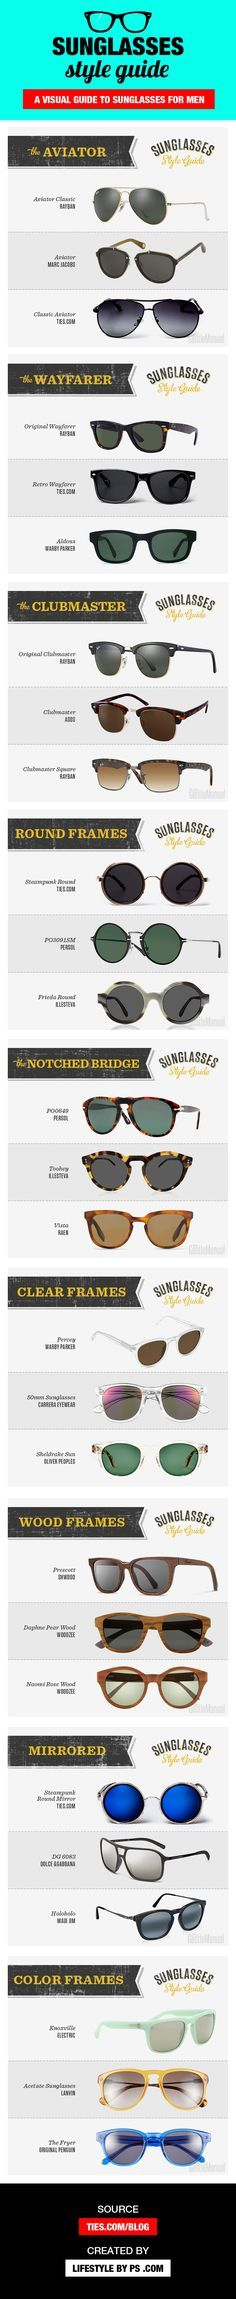 A Visual Guide To Sunglasses For Men - Infographic   LIFESTYLE BY PS